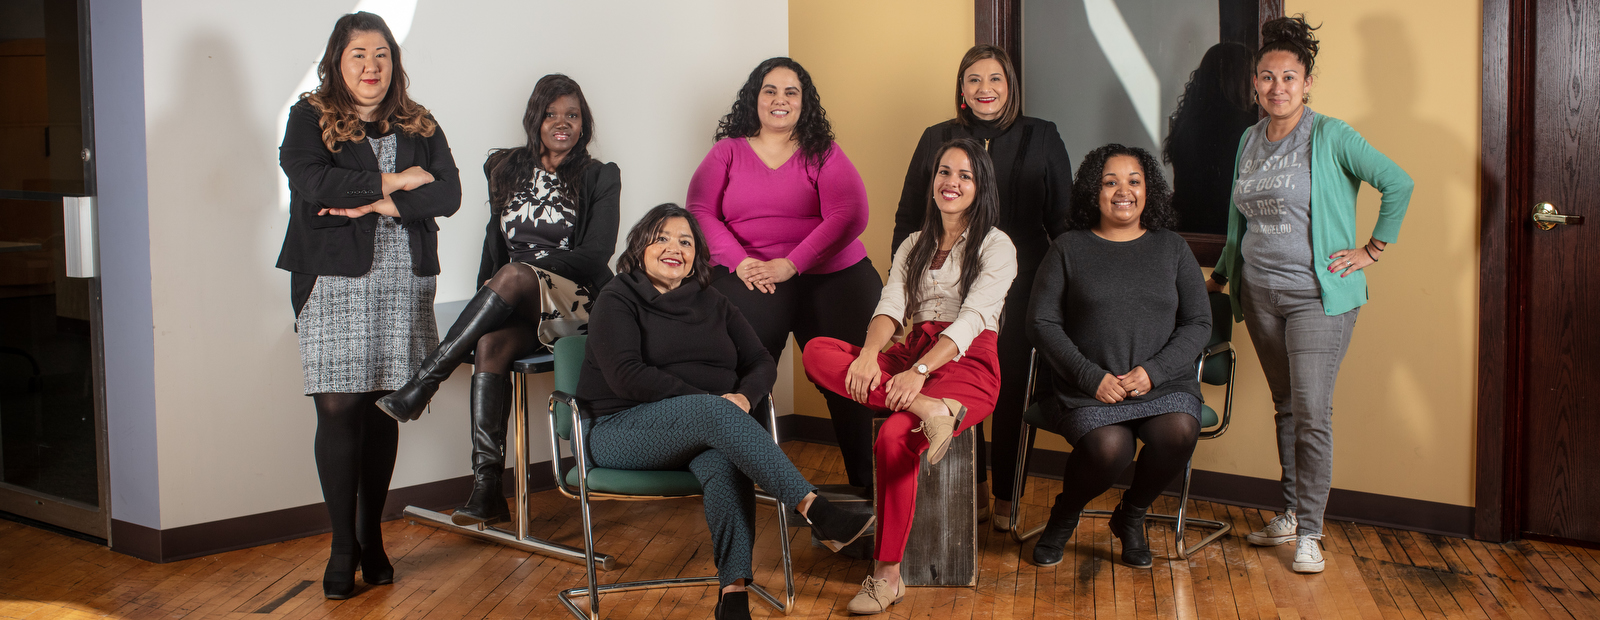 Remembering Women's history month, groups like the Latina Network of West Michigan are the history makers of today.